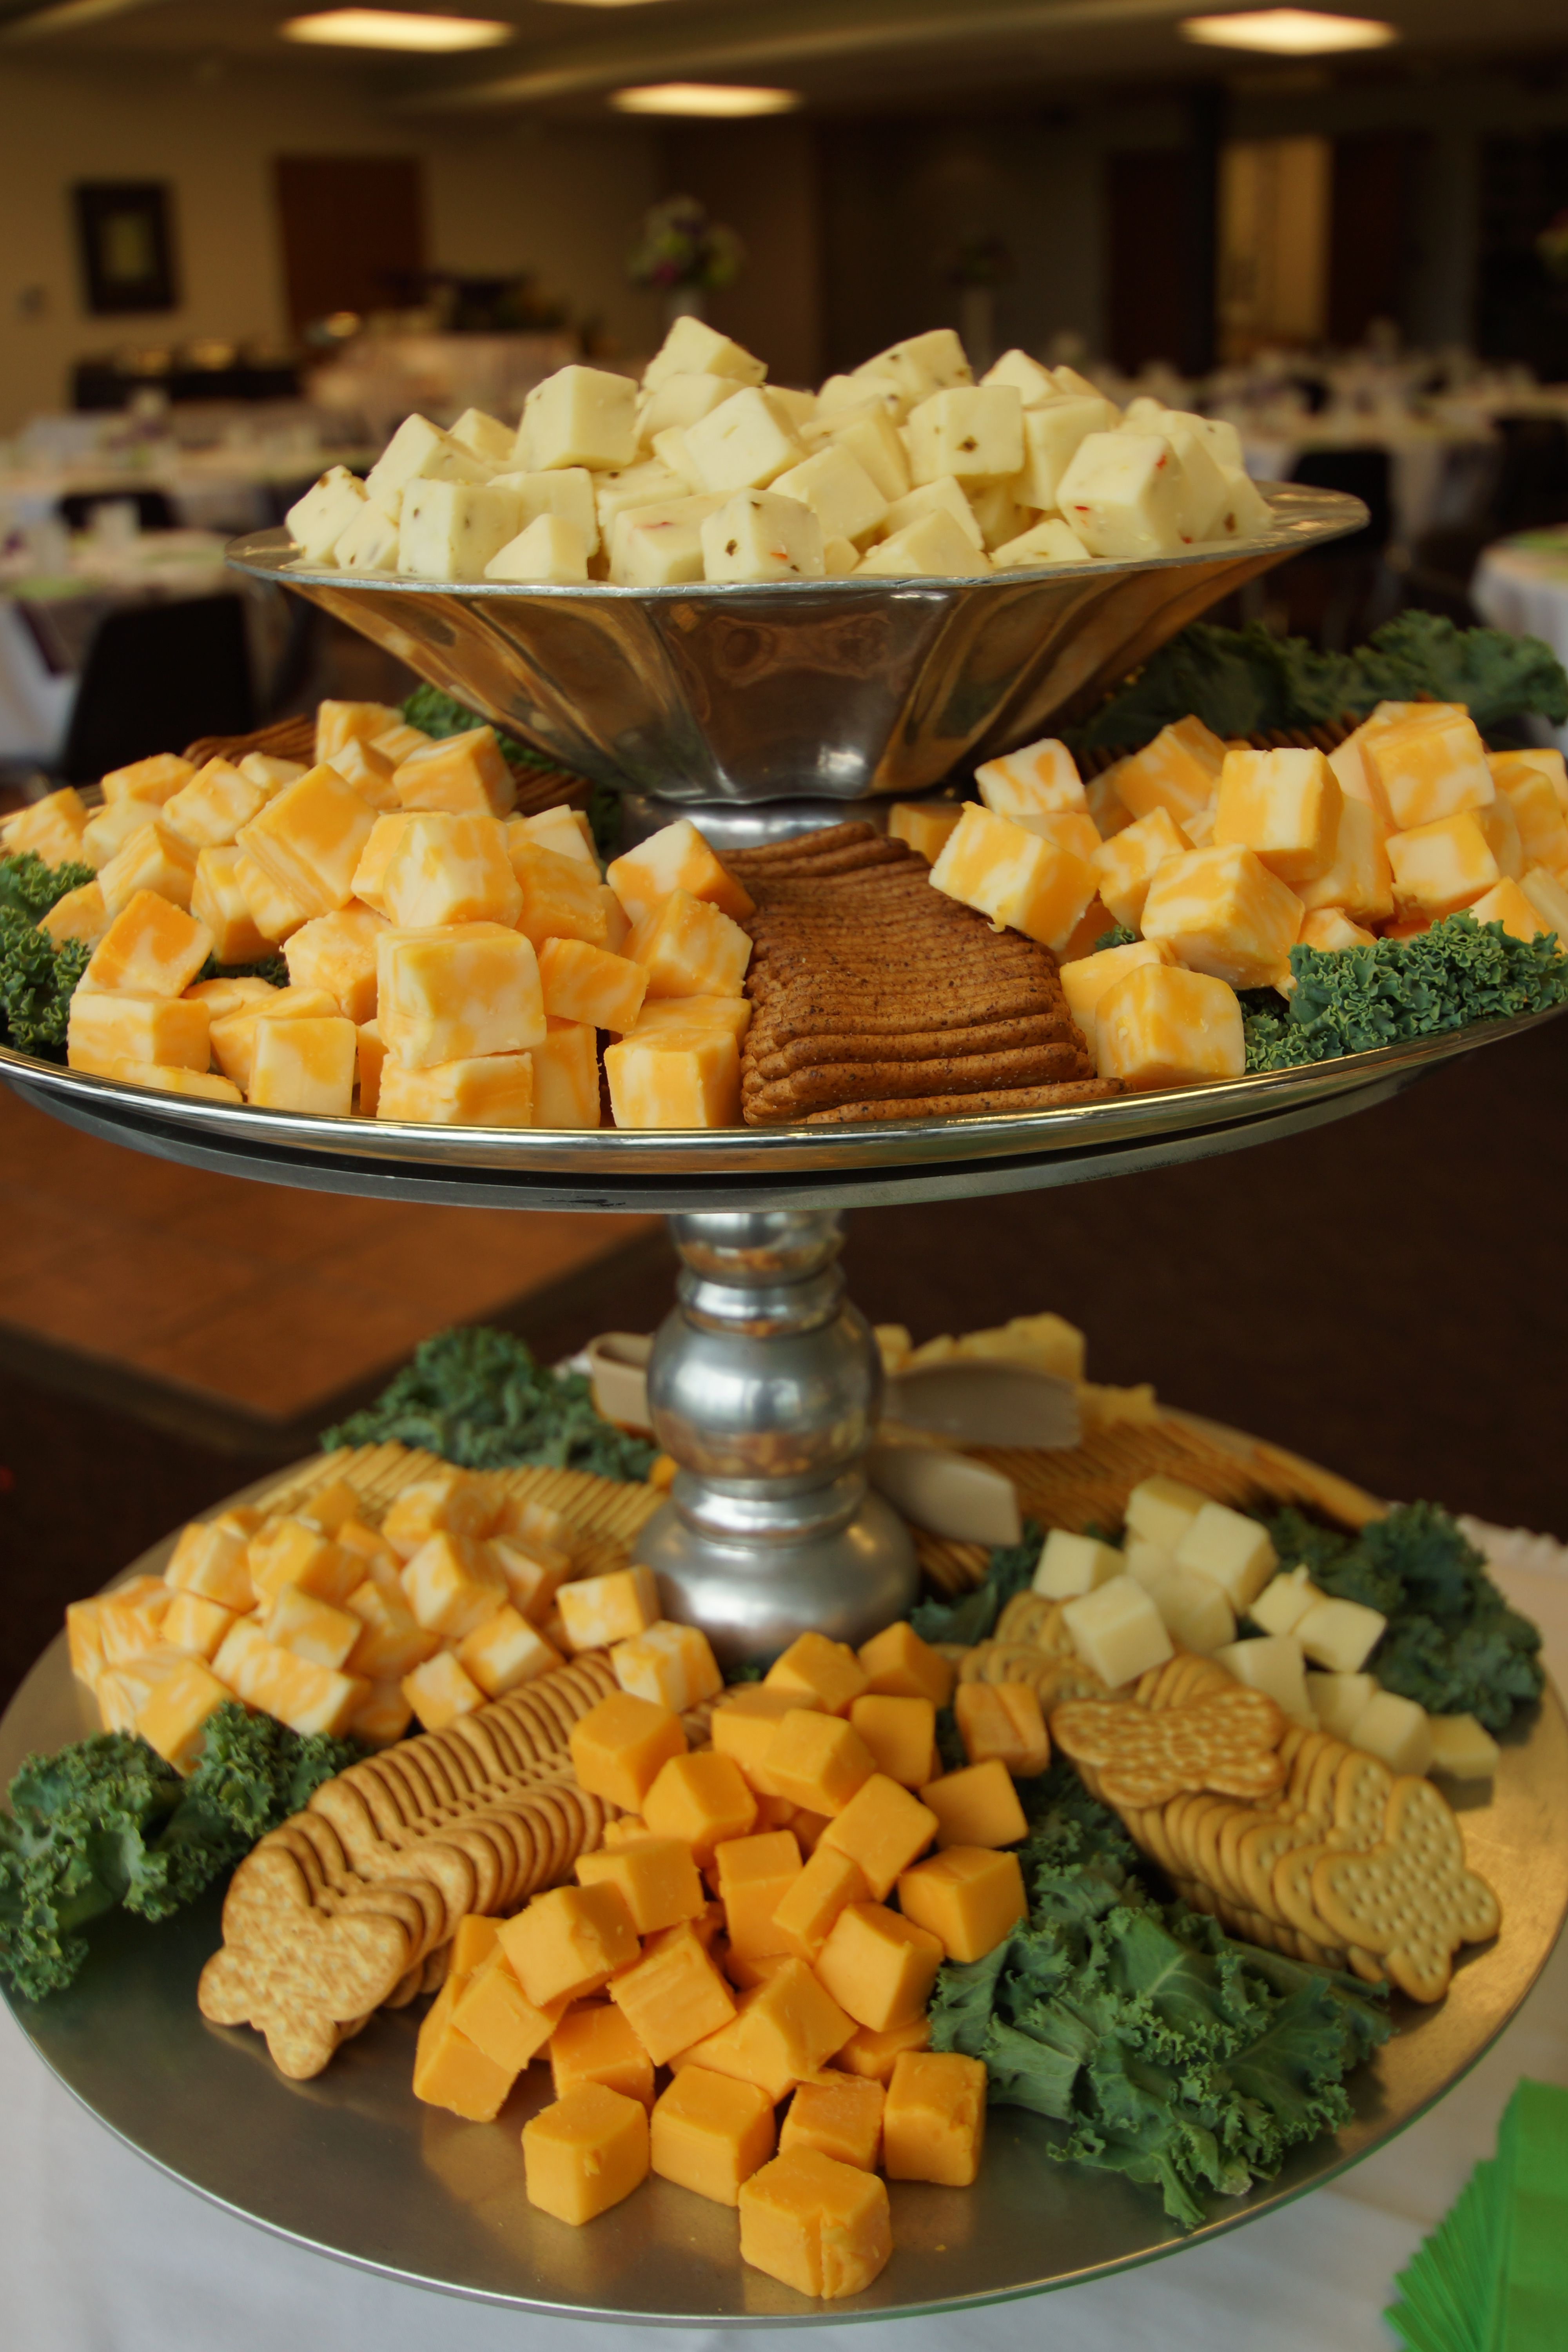 Corporate Catering Utah Looking For Help With Your